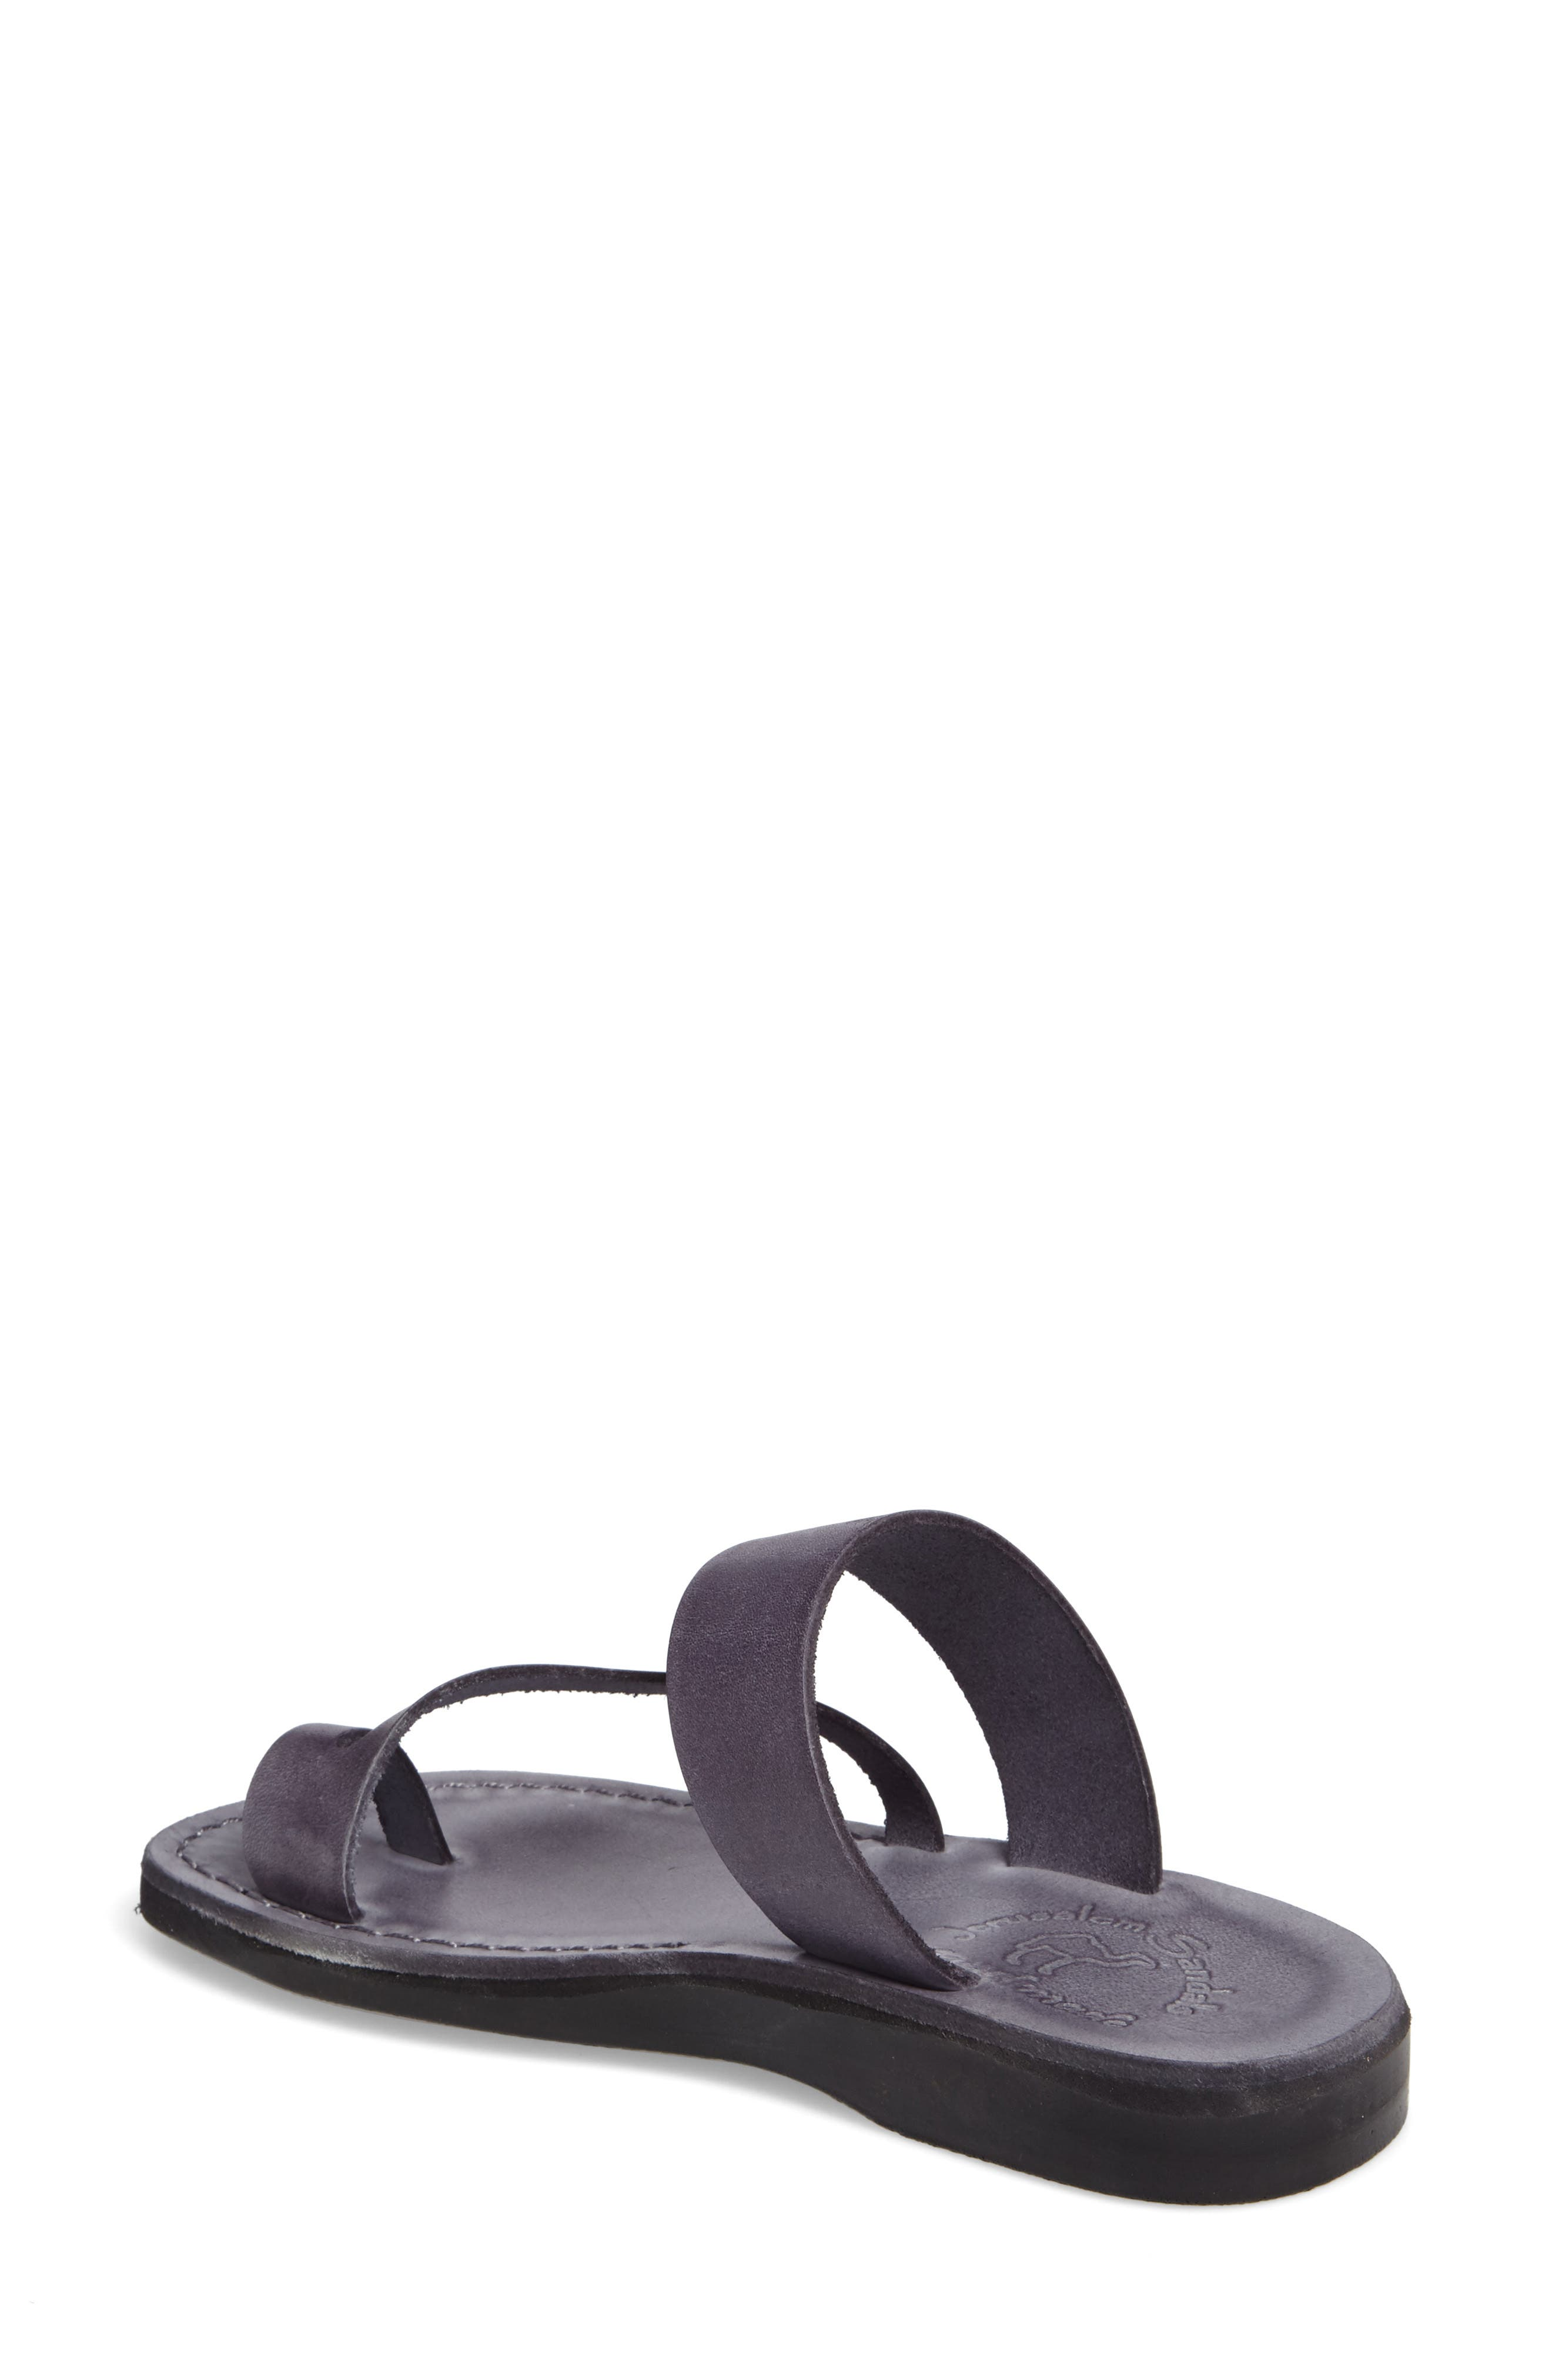 'Zohar' Leather Sandal,                             Alternate thumbnail 9, color,